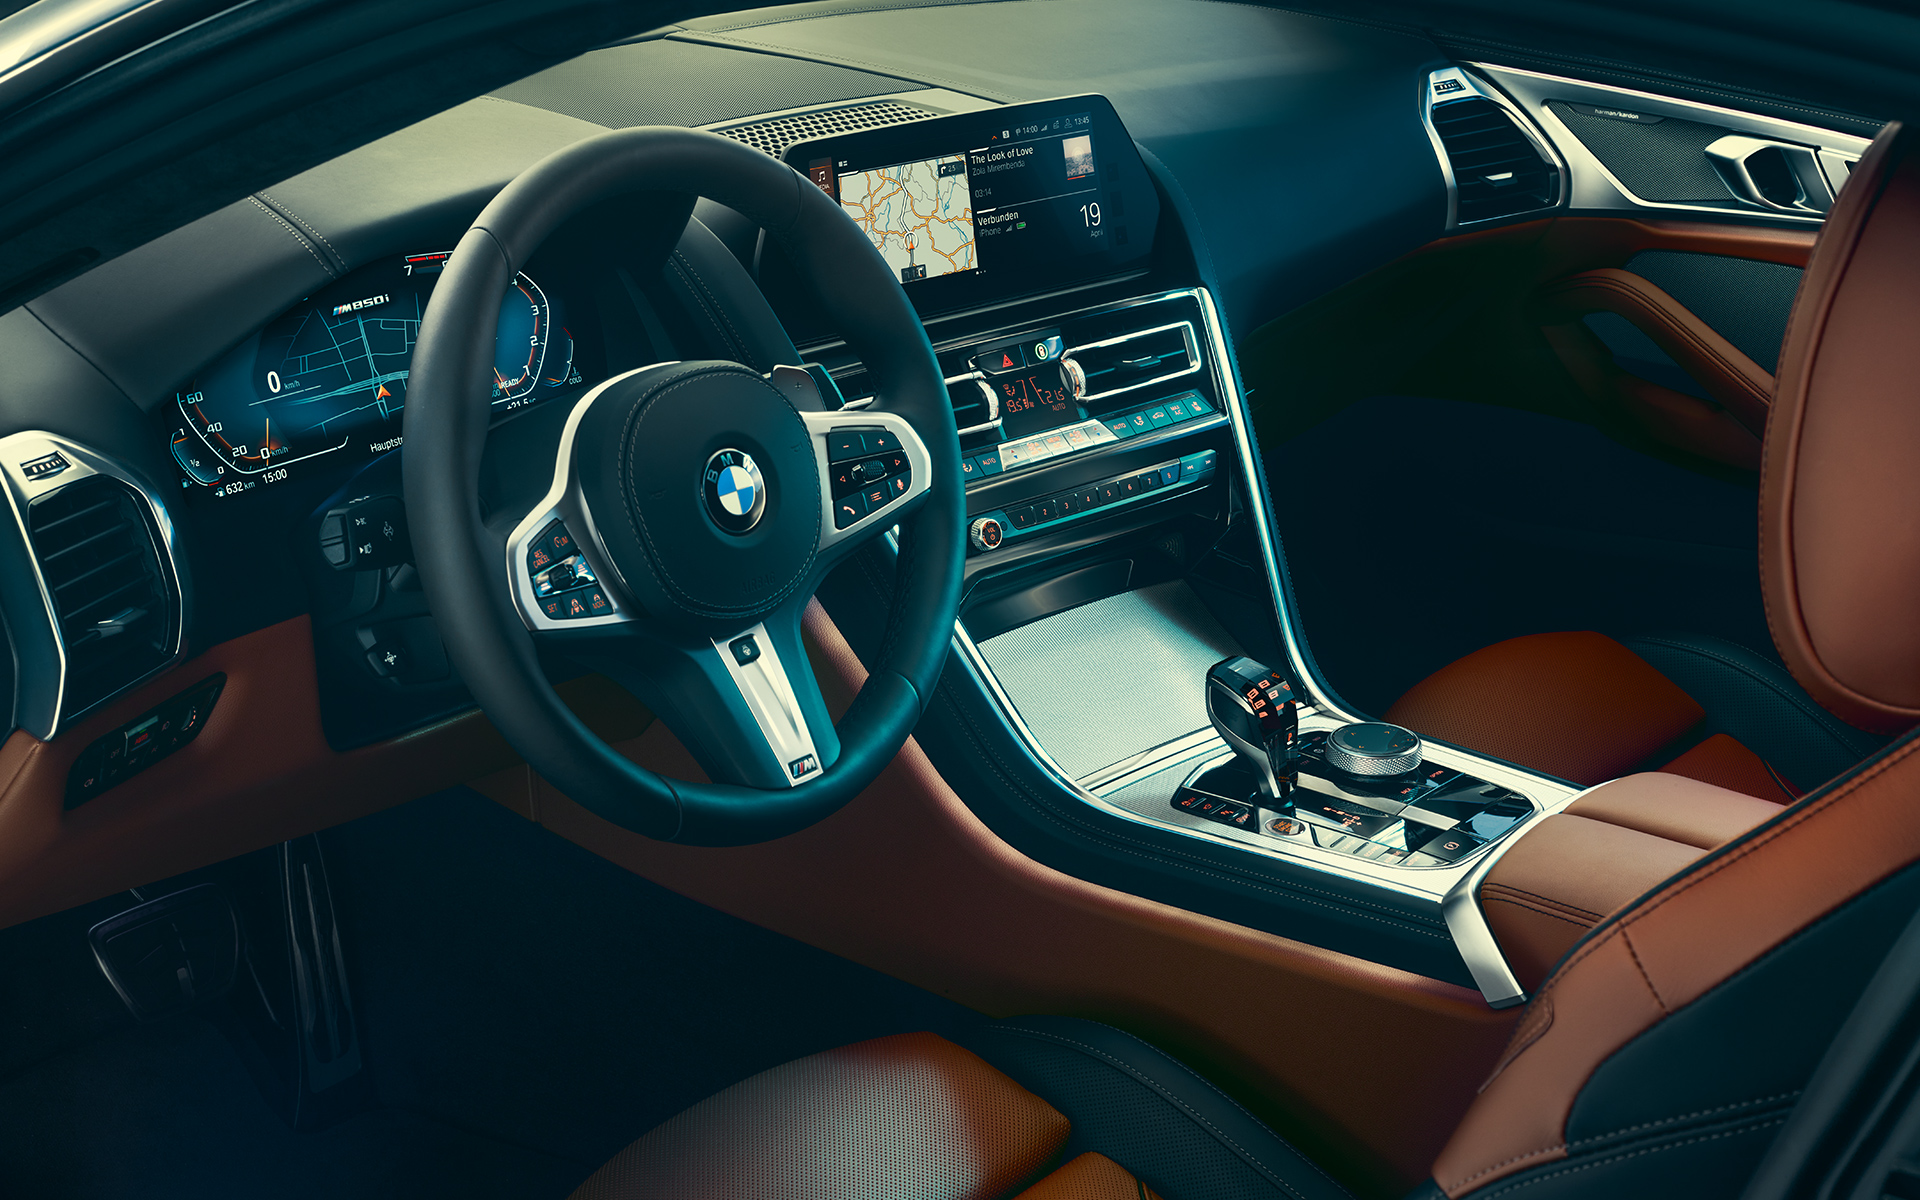 Interior of the BMW 8 Series Coupé, focused on steering wheel.